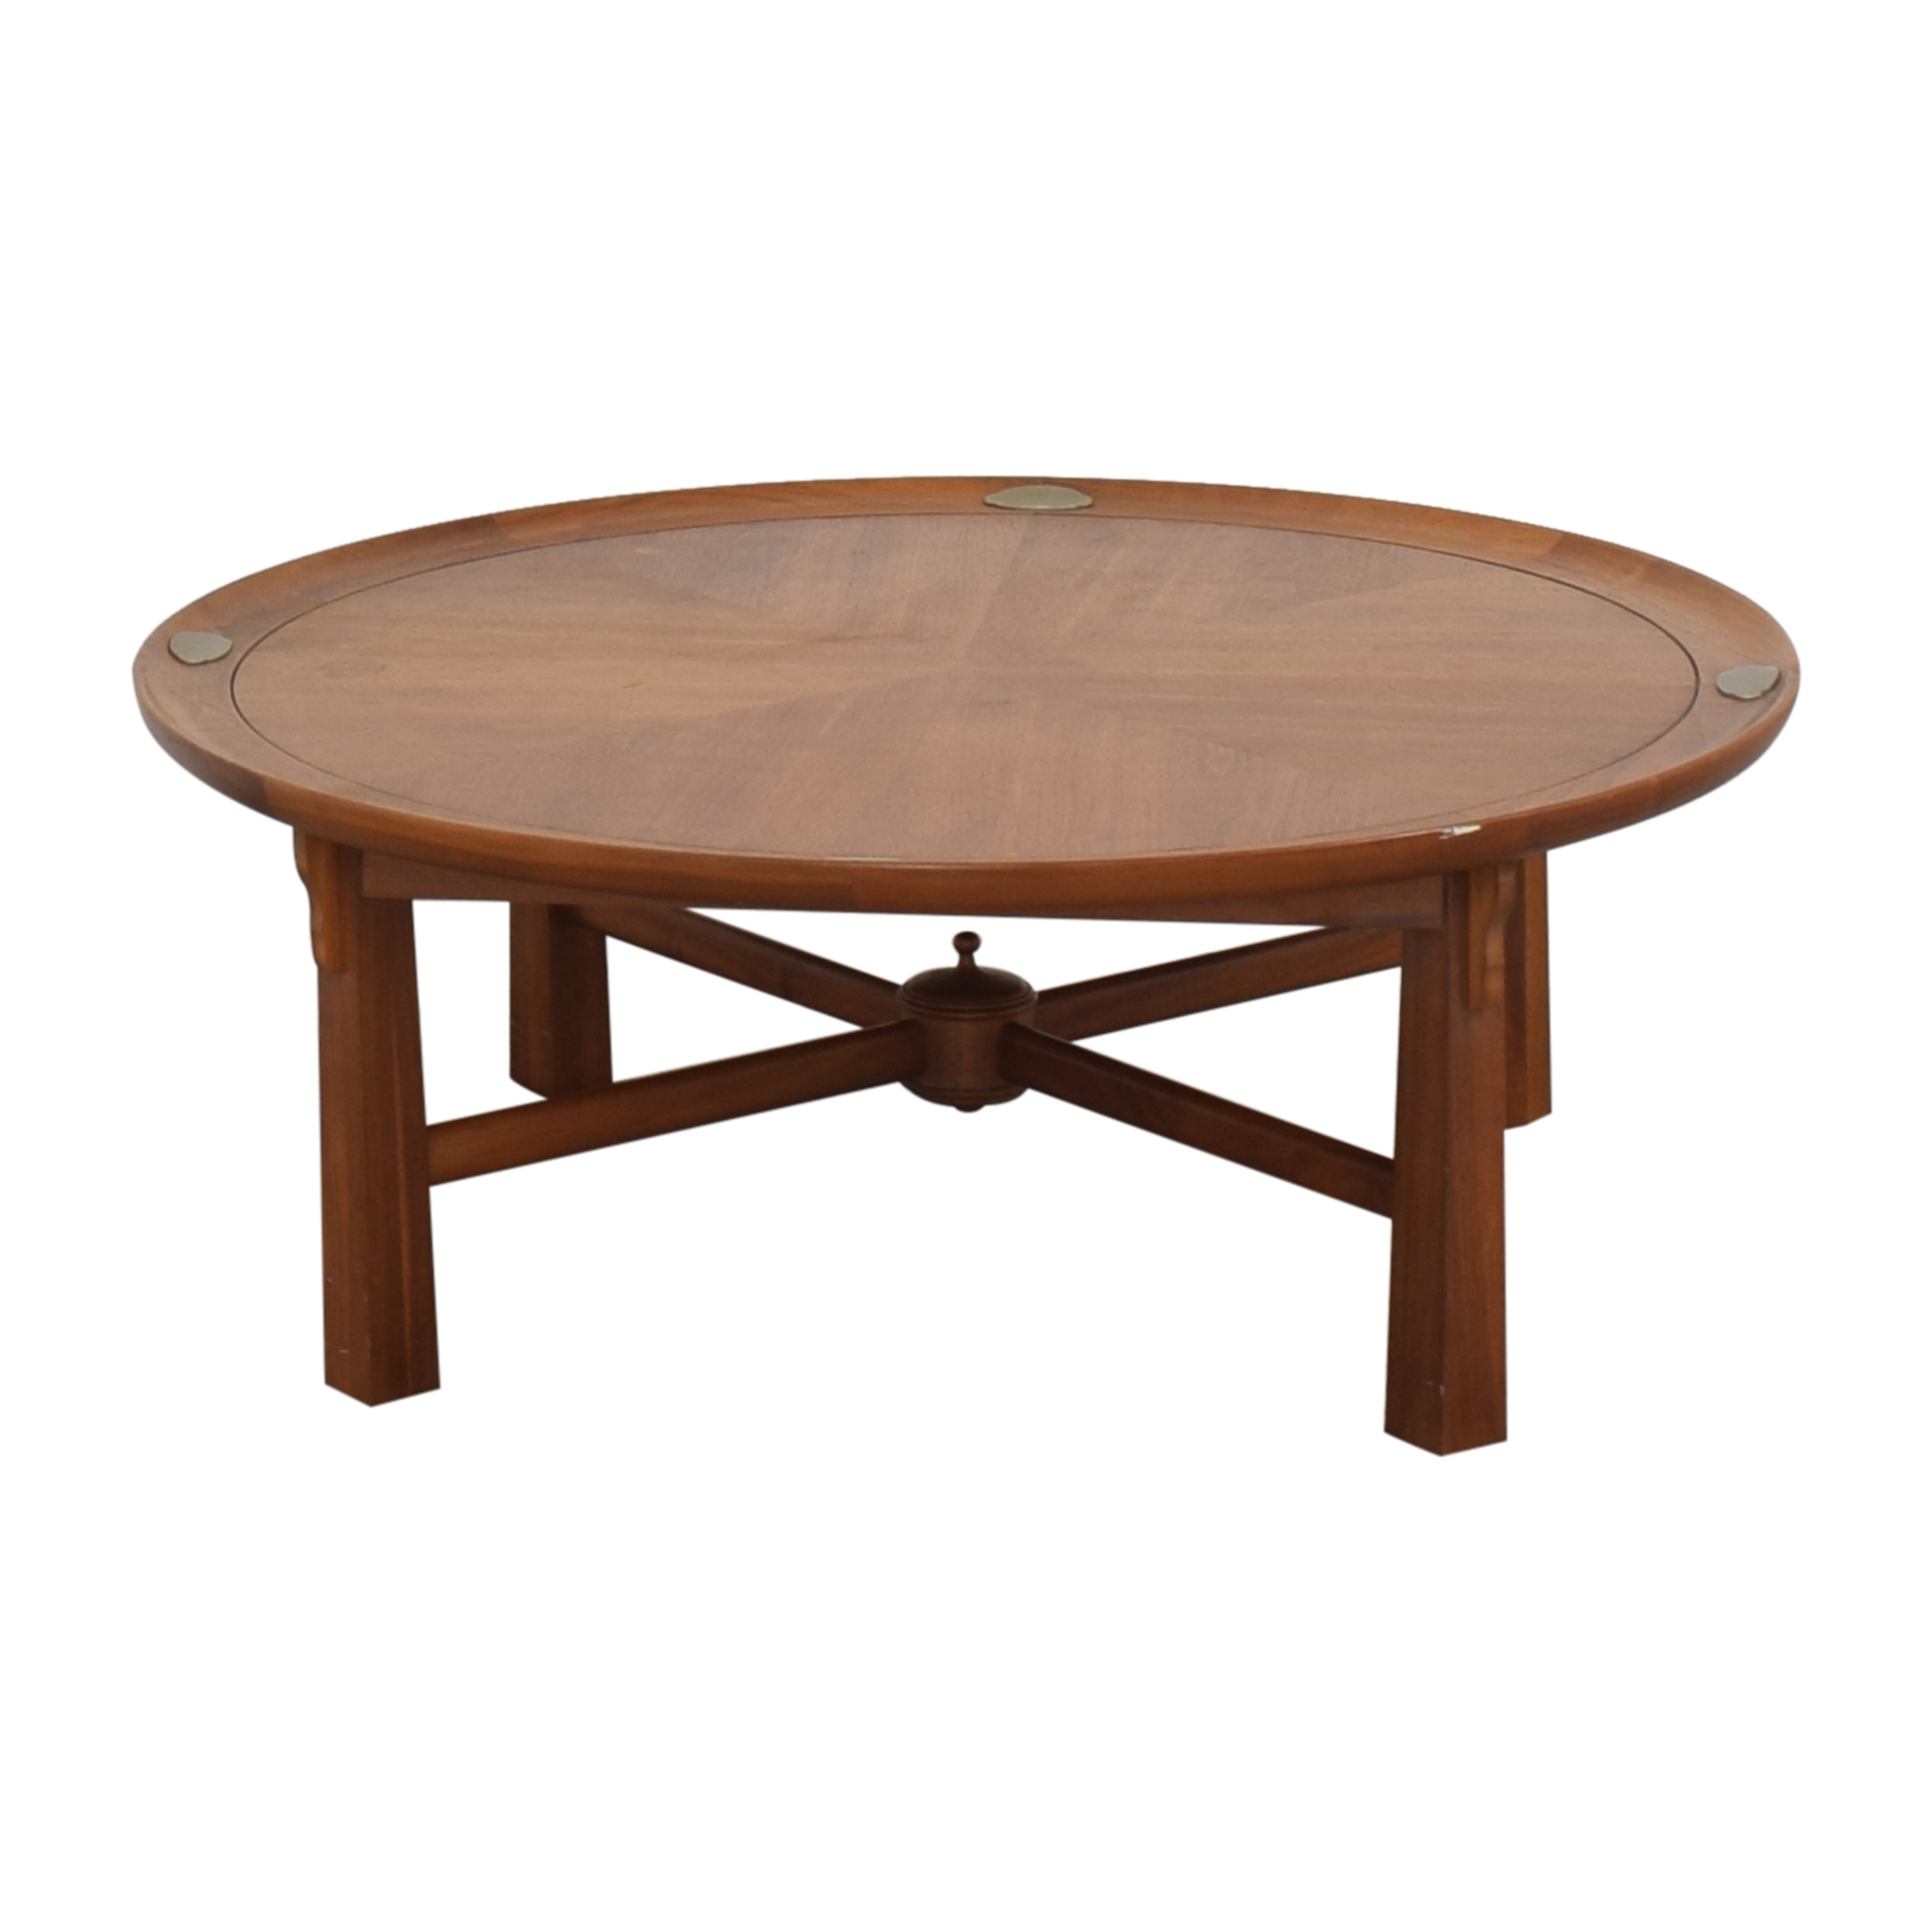 Heritage Henredon Heritage Henredon Round Coffee Table discount